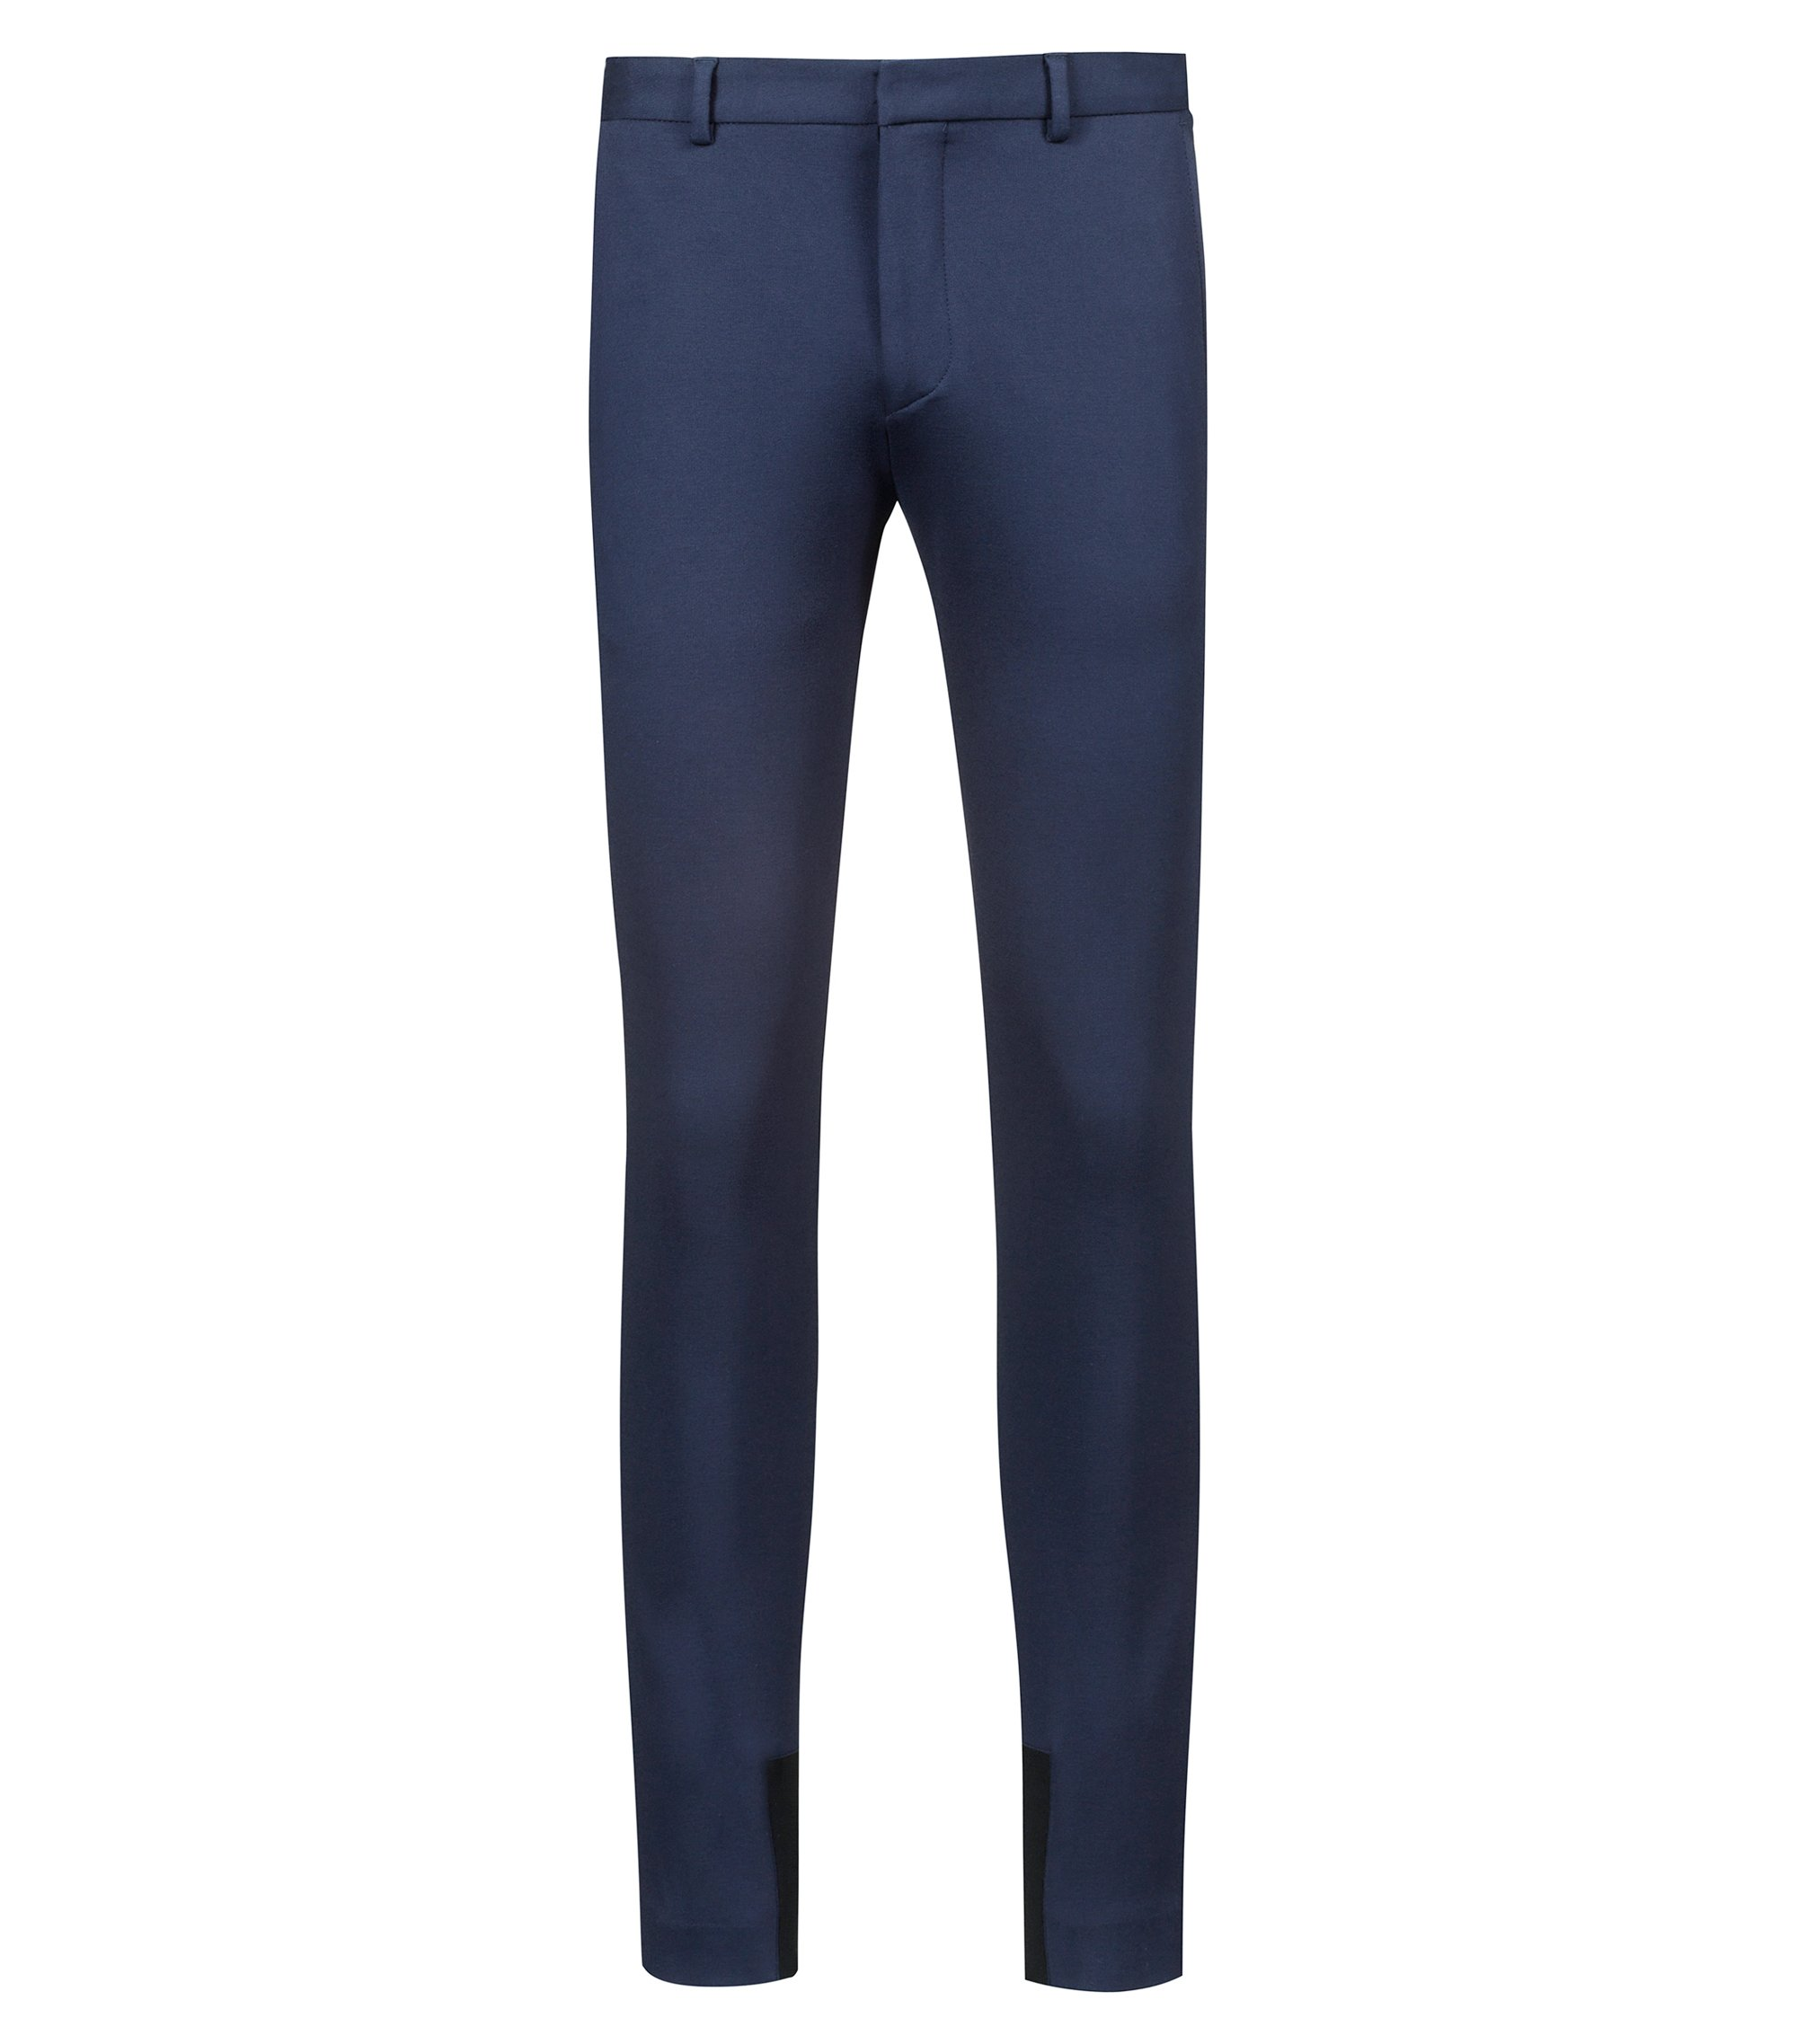 Bits & Bytes Capsule extra-slim-fit trousers in stretch jersey, Dark Blue